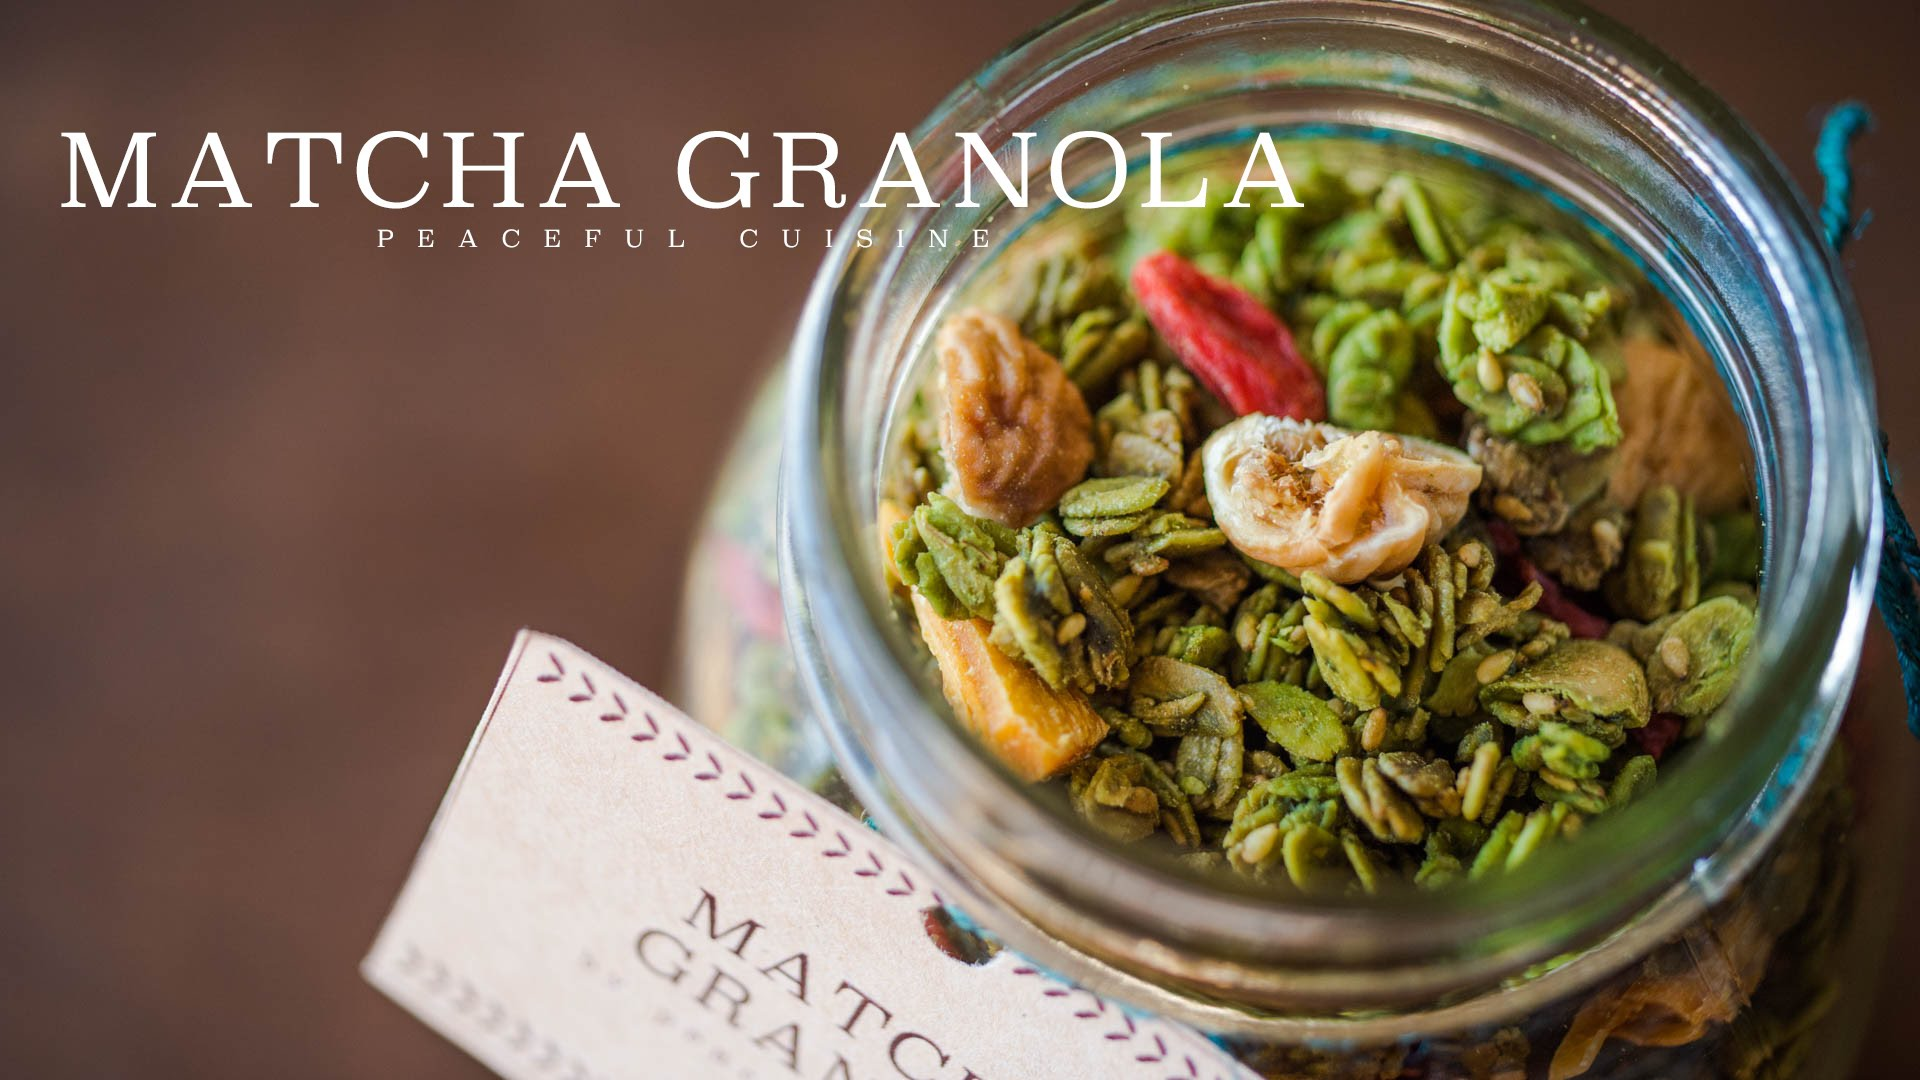 Picture & Recipe of Matcha Granola from Peaceful Cuisine